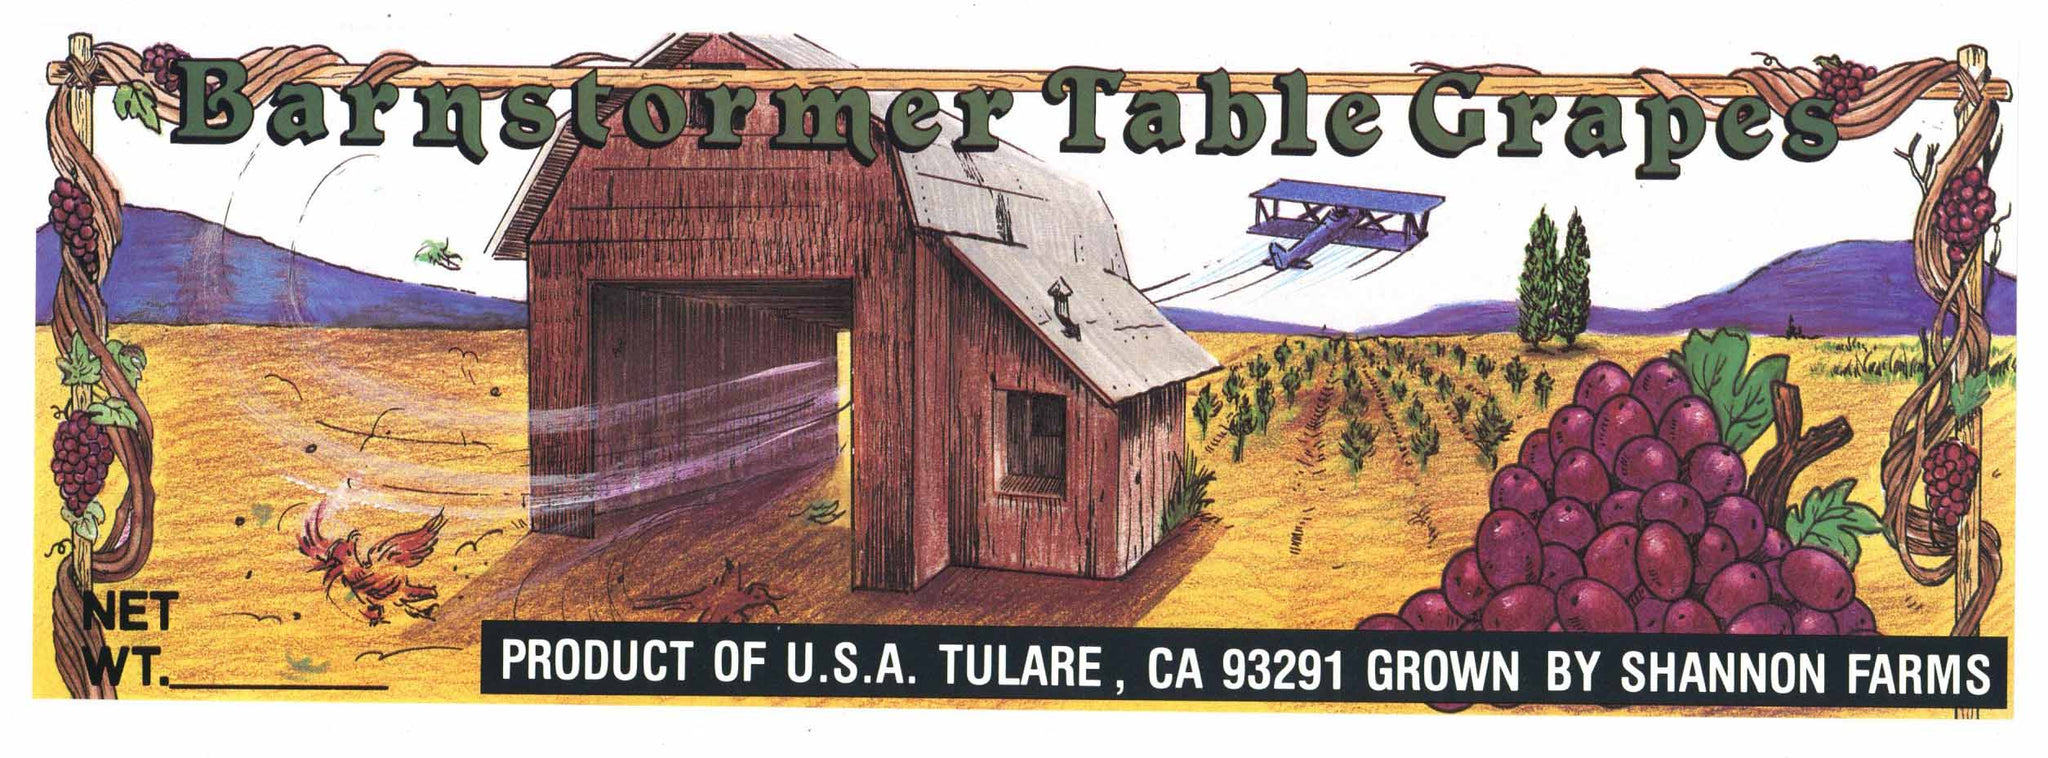 Barn Stormer Brand Vintage Grape Crate Label